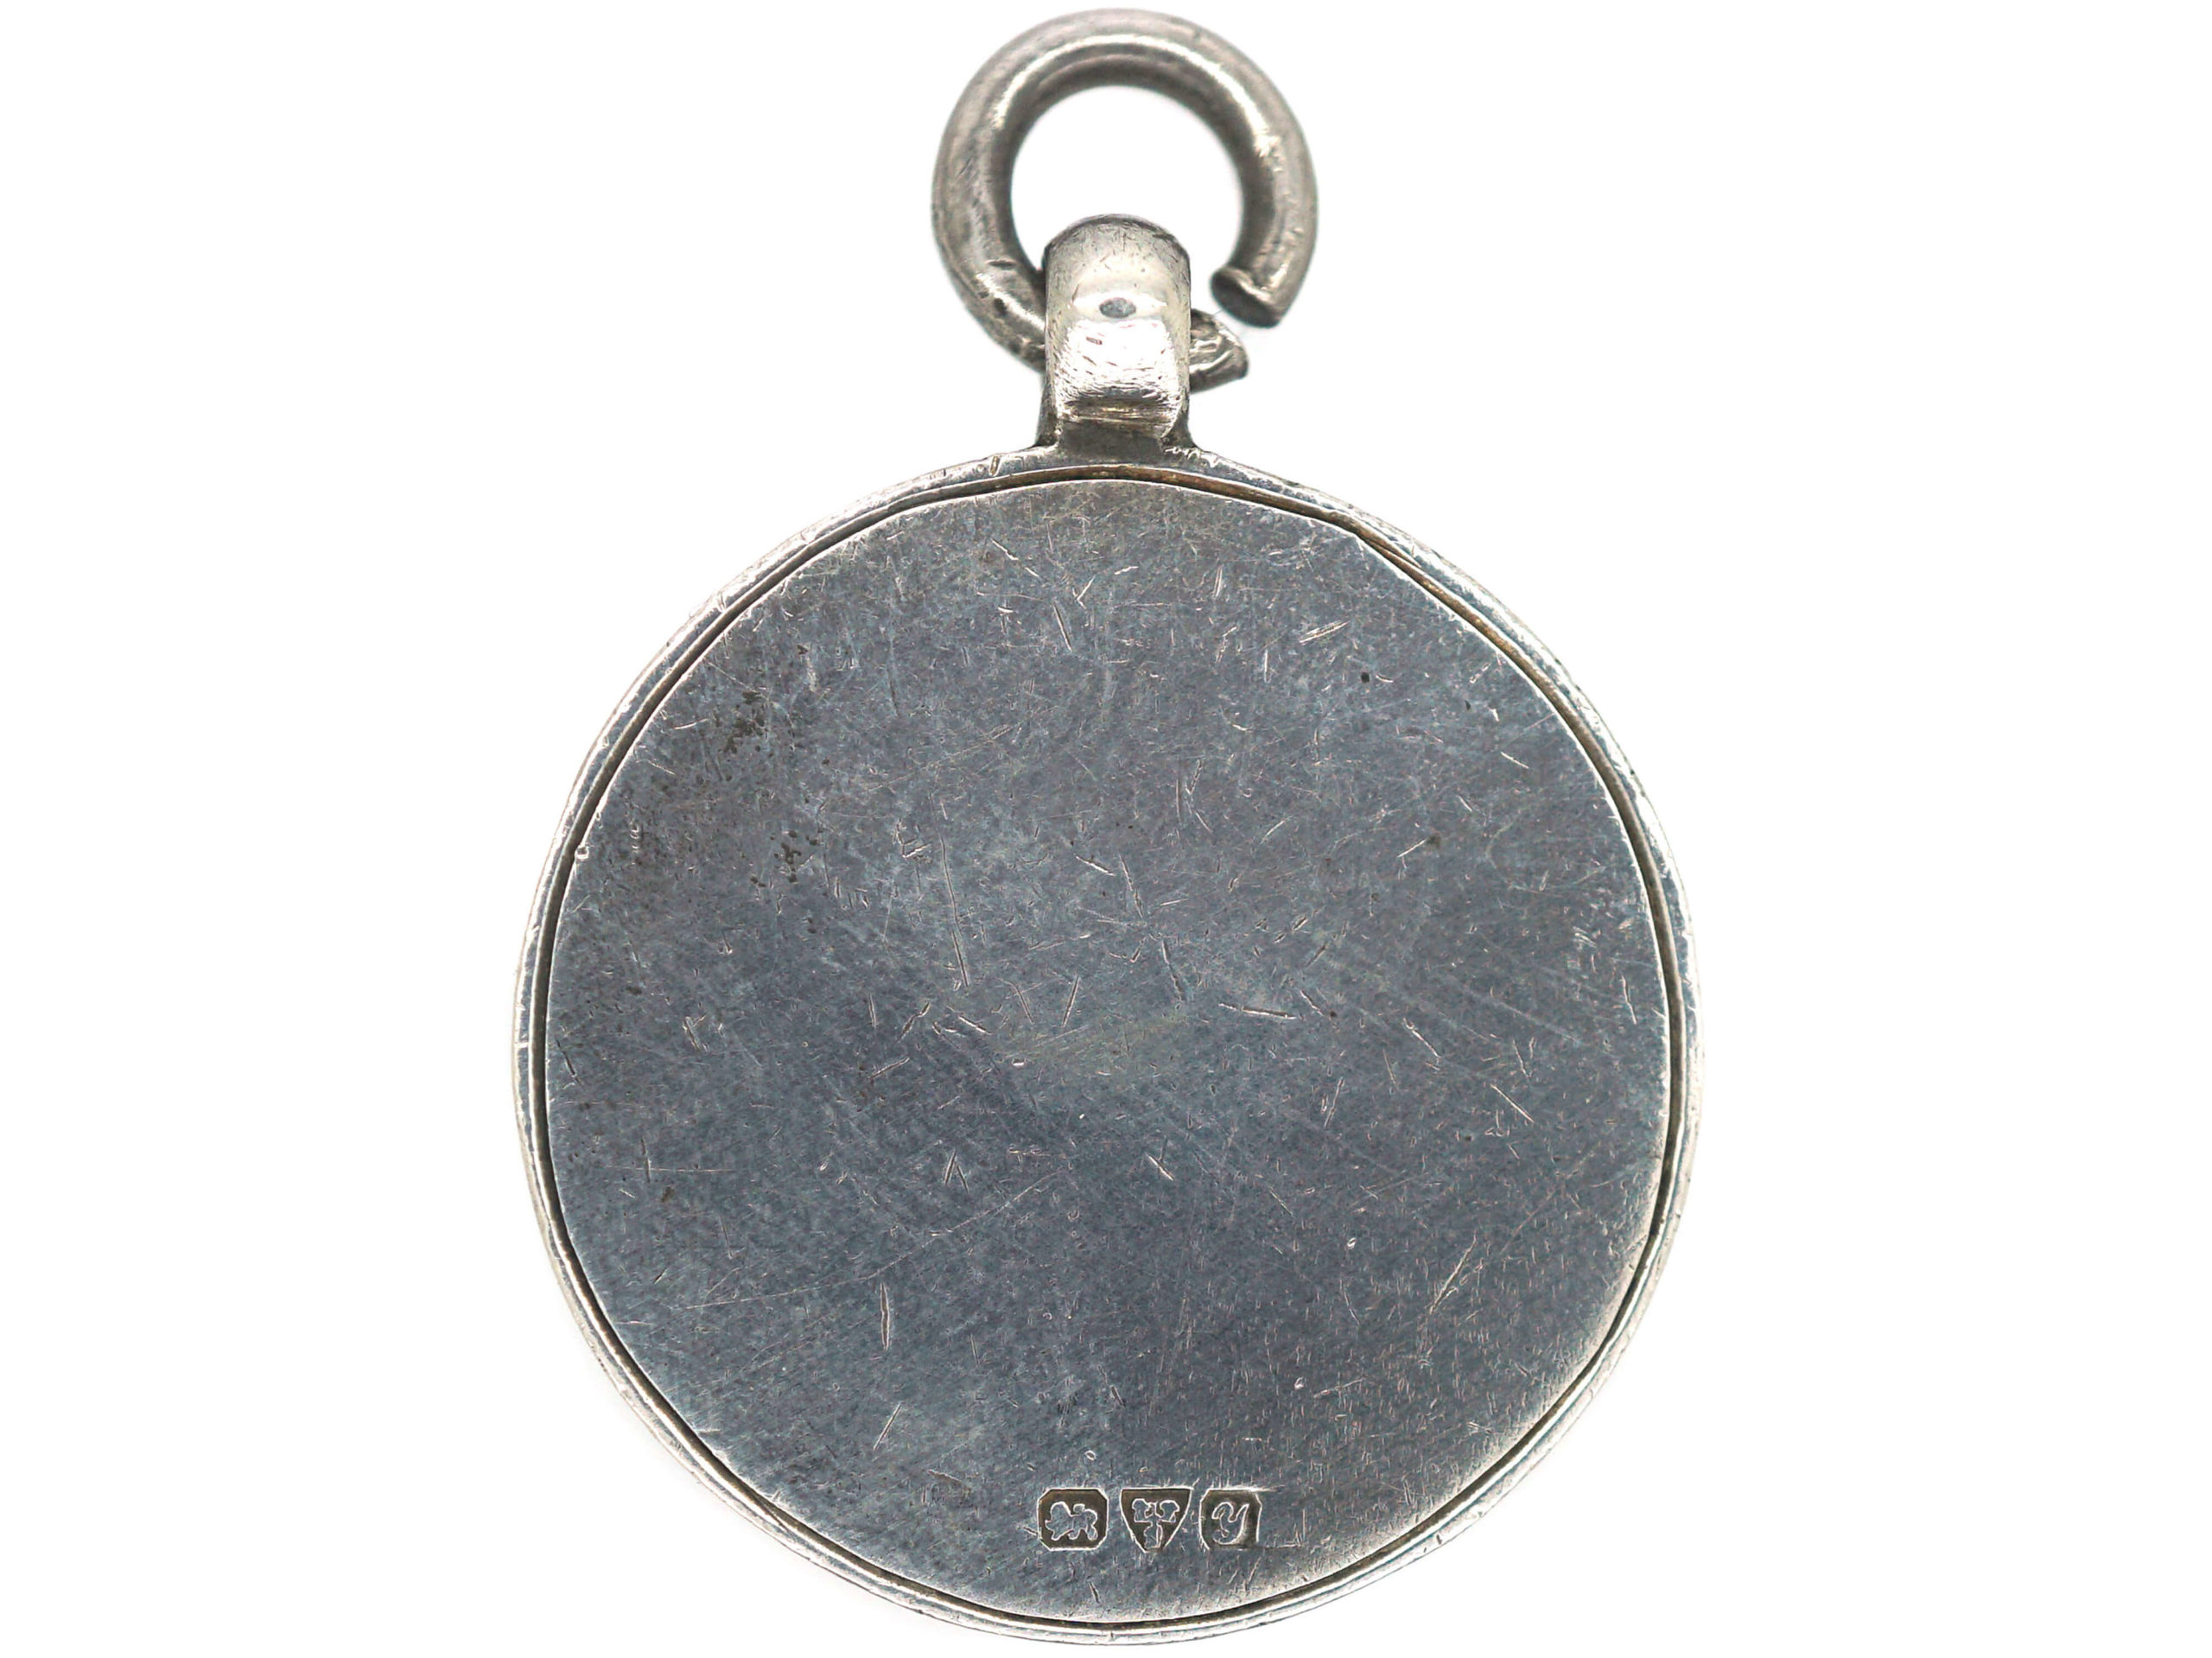 Art Deco Silver & Gold Overlay Pendant with Shield Motif